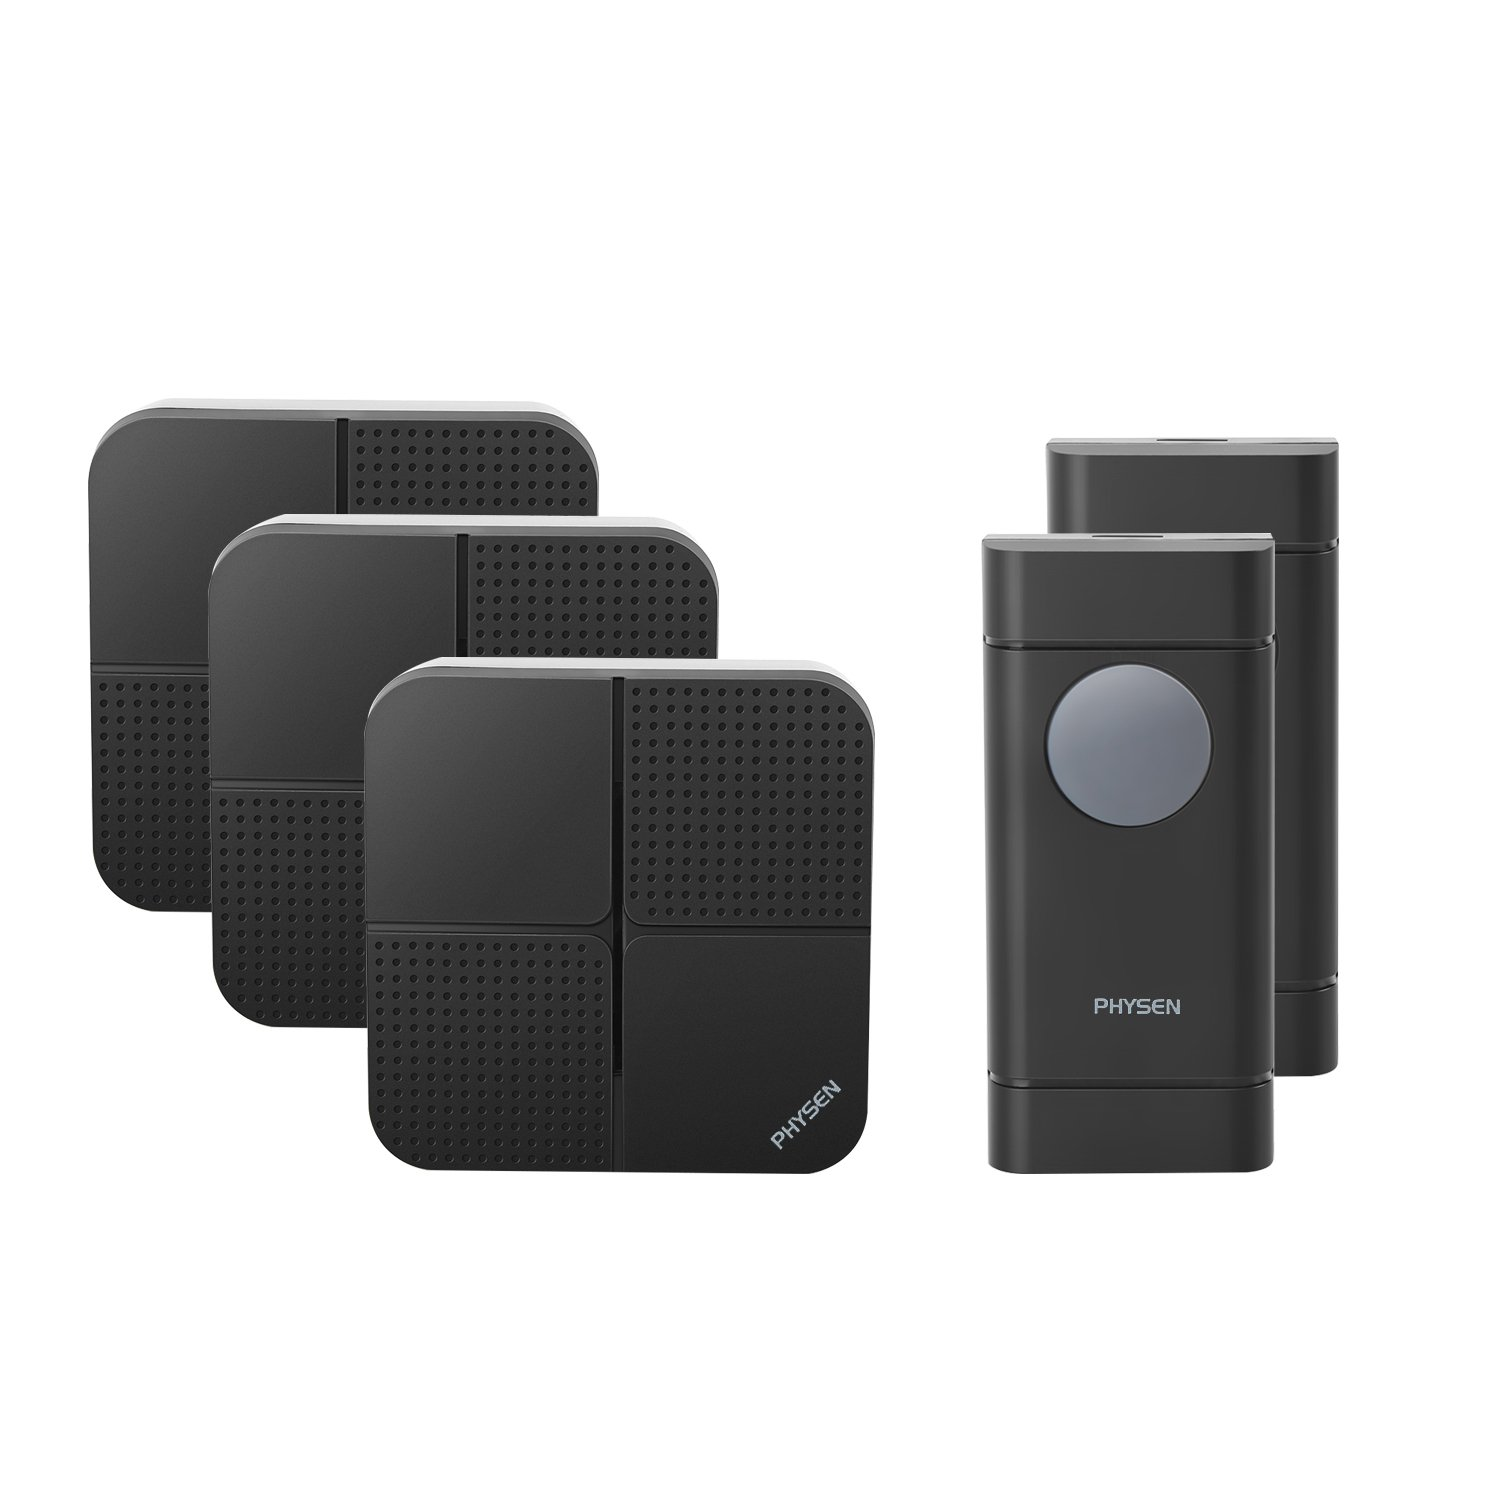 Physen Model X5 Waterproof Wireless Doorbells with 2 Push Button and 3 Plugin Receiver,Operating Range at 900 Feet,4 Adjustable Volume Levels and 52 Chimes,No Battery Required for Receiver,Black